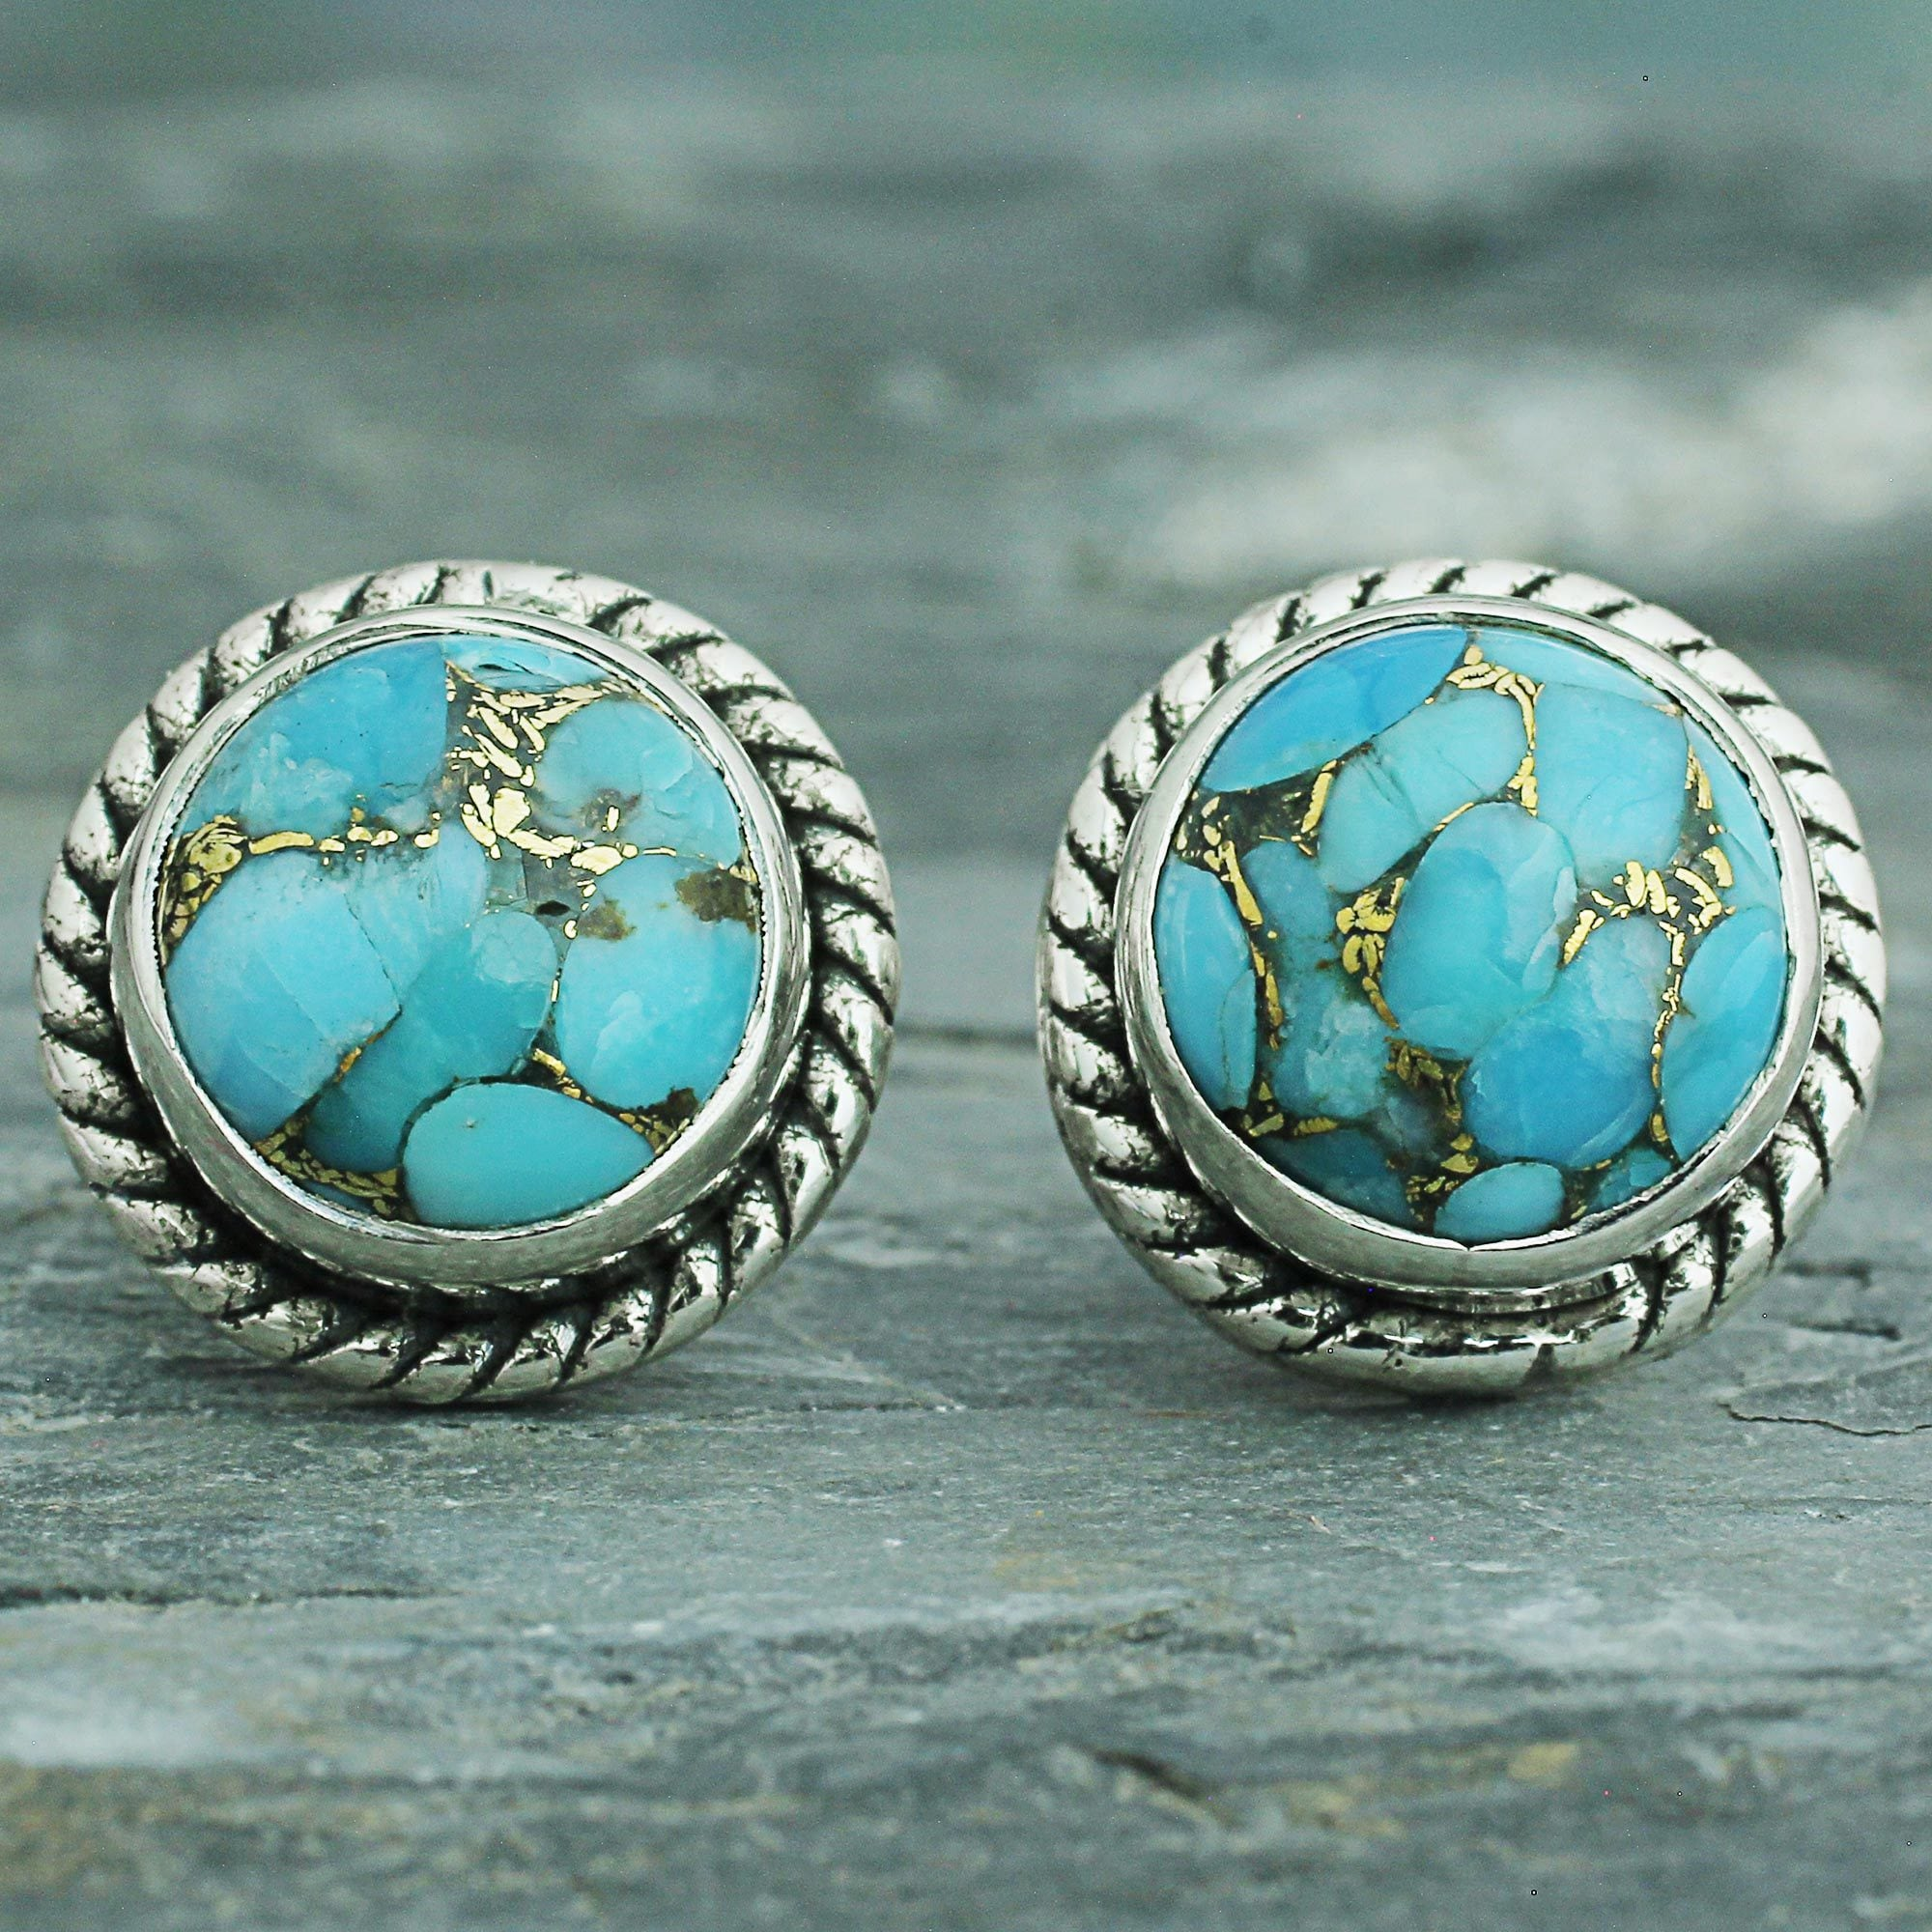 Handmade Sterling Silver Cool Aqua Radiance Turquoise Earrings India On Free Shipping Orders Over 45 12881921